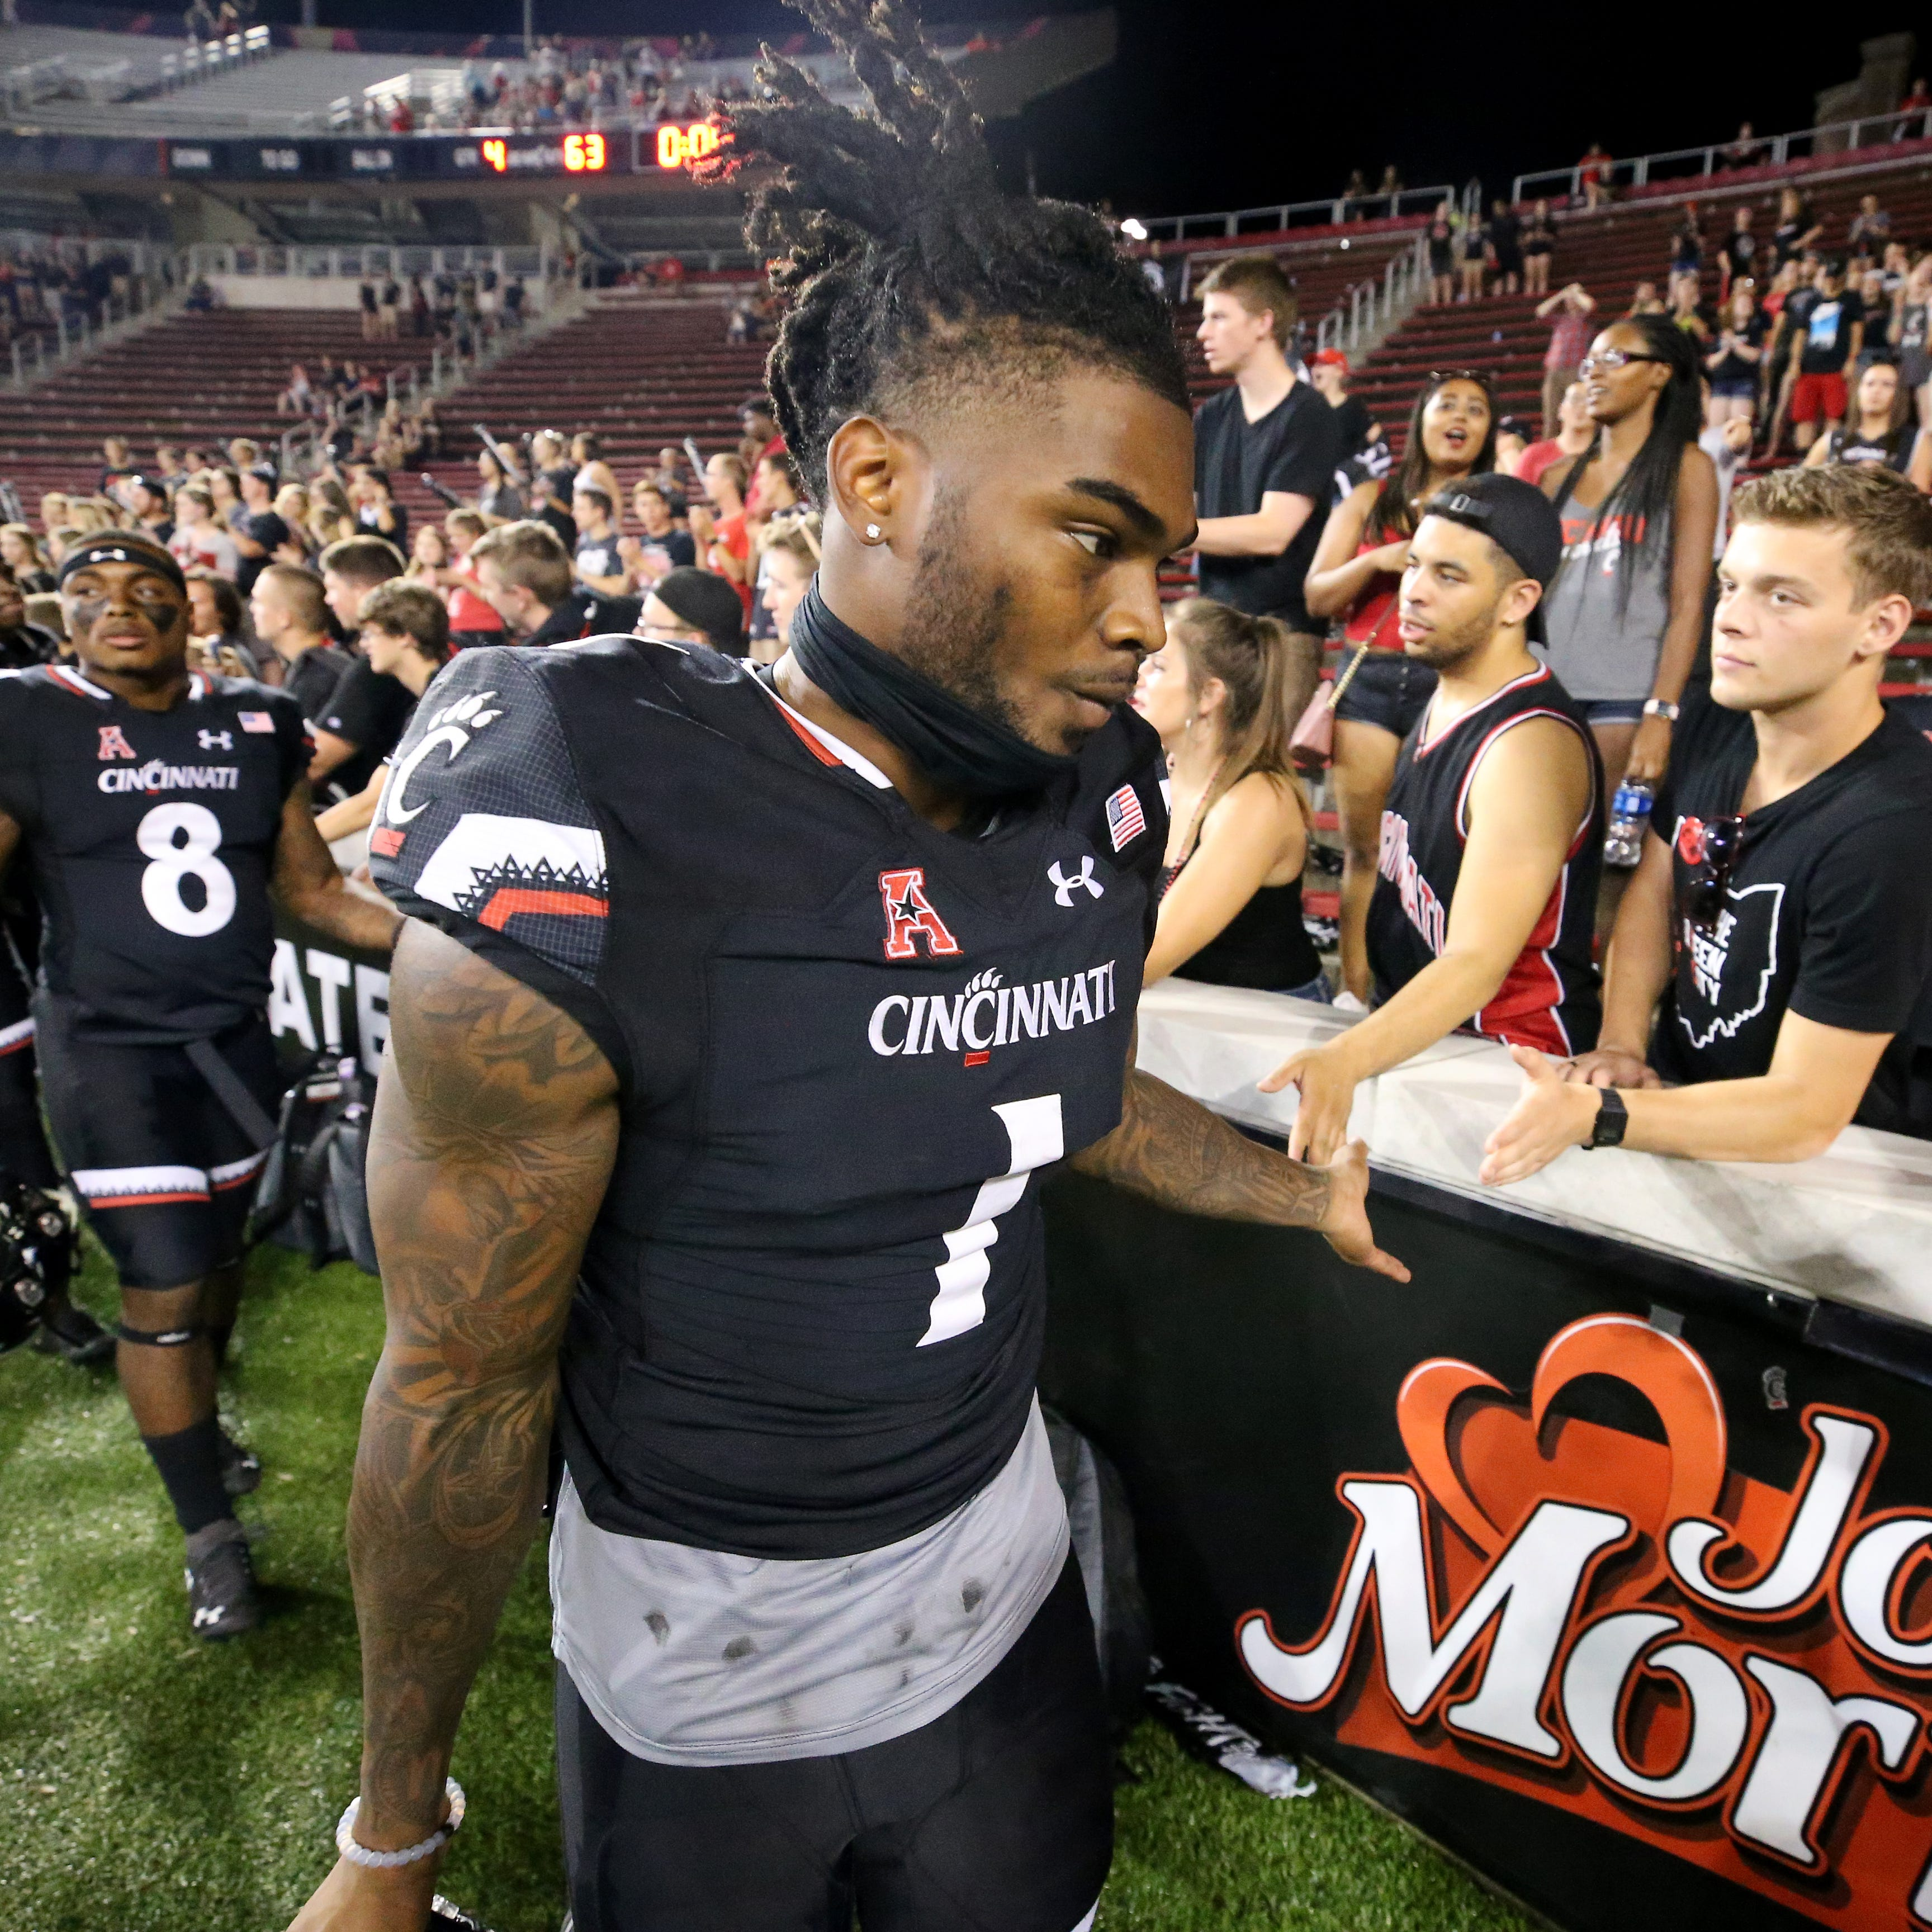 Where do University of Cincinnati Bearcats stand in latest AAC football power rankings?